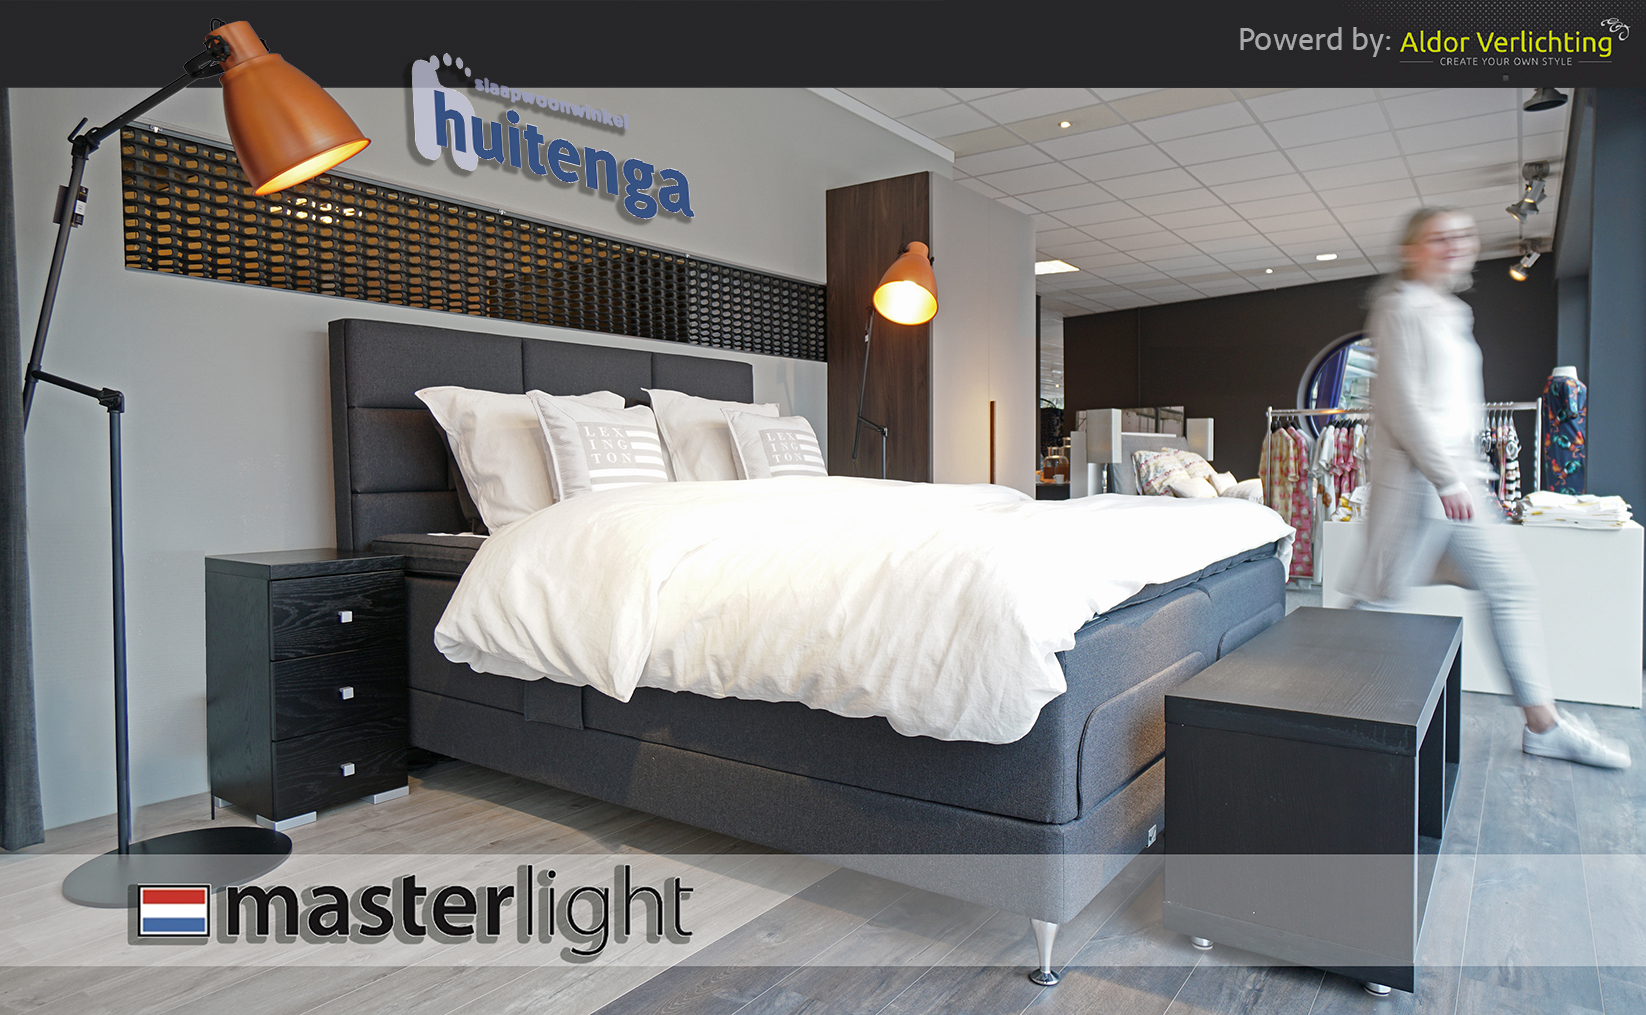 Masterlight Powerd By